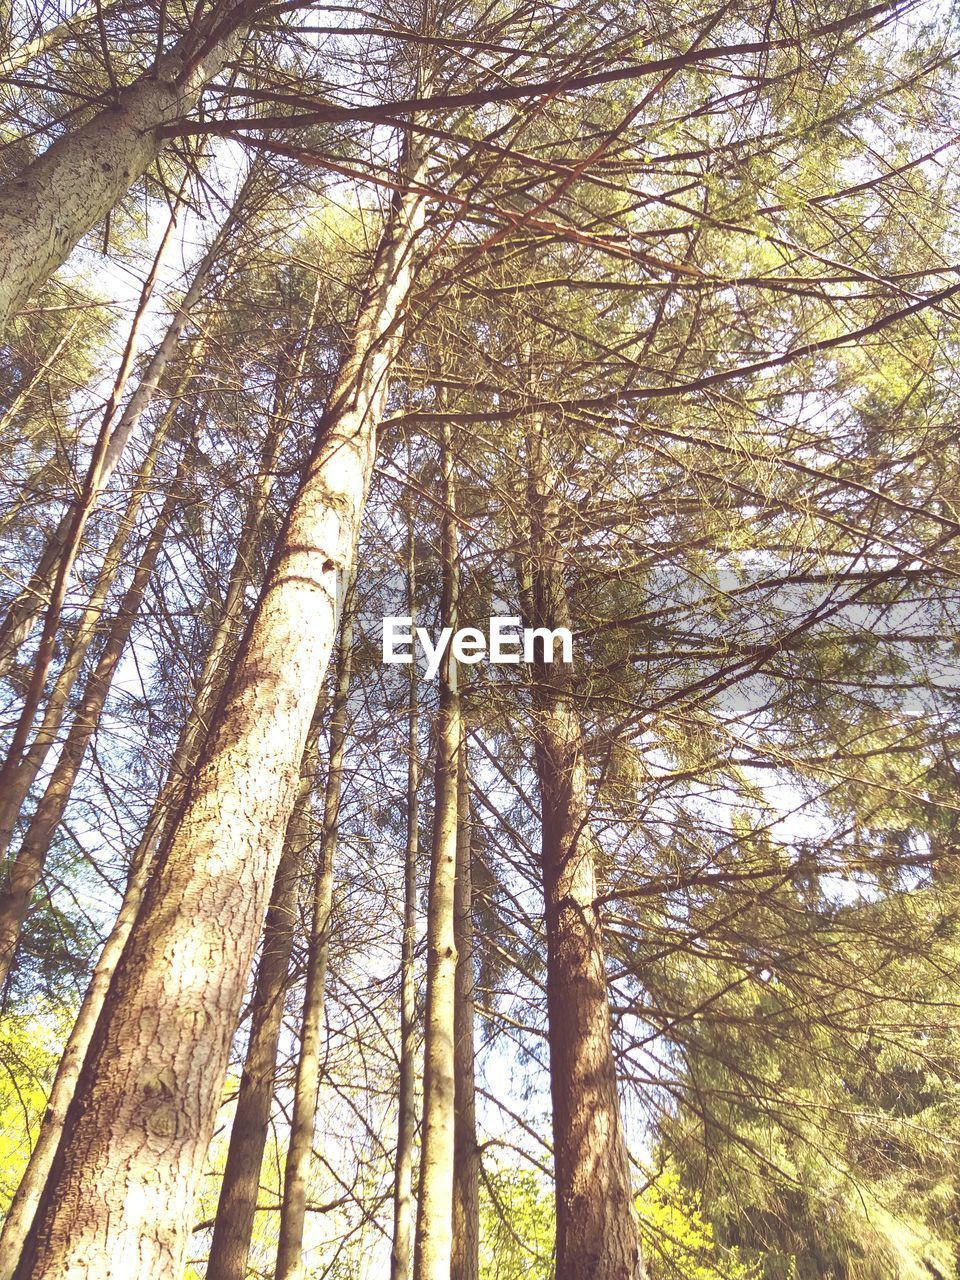 tree, plant, forest, low angle view, tree trunk, woodland, trunk, land, growth, tranquility, beauty in nature, nature, tall - high, no people, day, branch, outdoors, scenics - nature, non-urban scene, tranquil scene, tree canopy, bamboo - plant, pine tree, pine woodland, coniferous tree